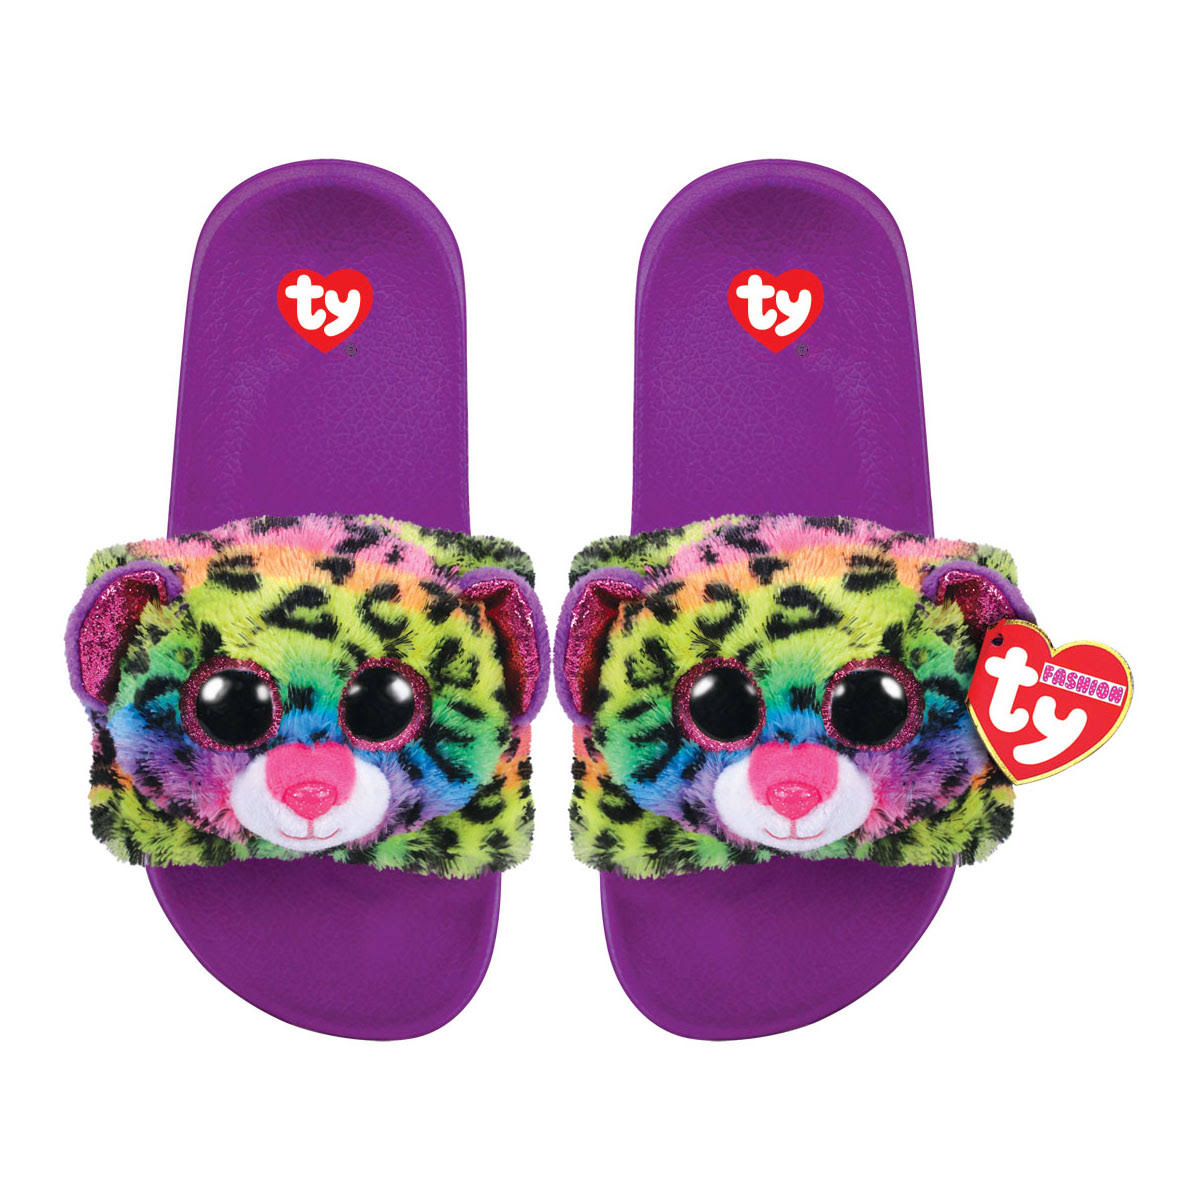 Ty Dotty Pool Slides